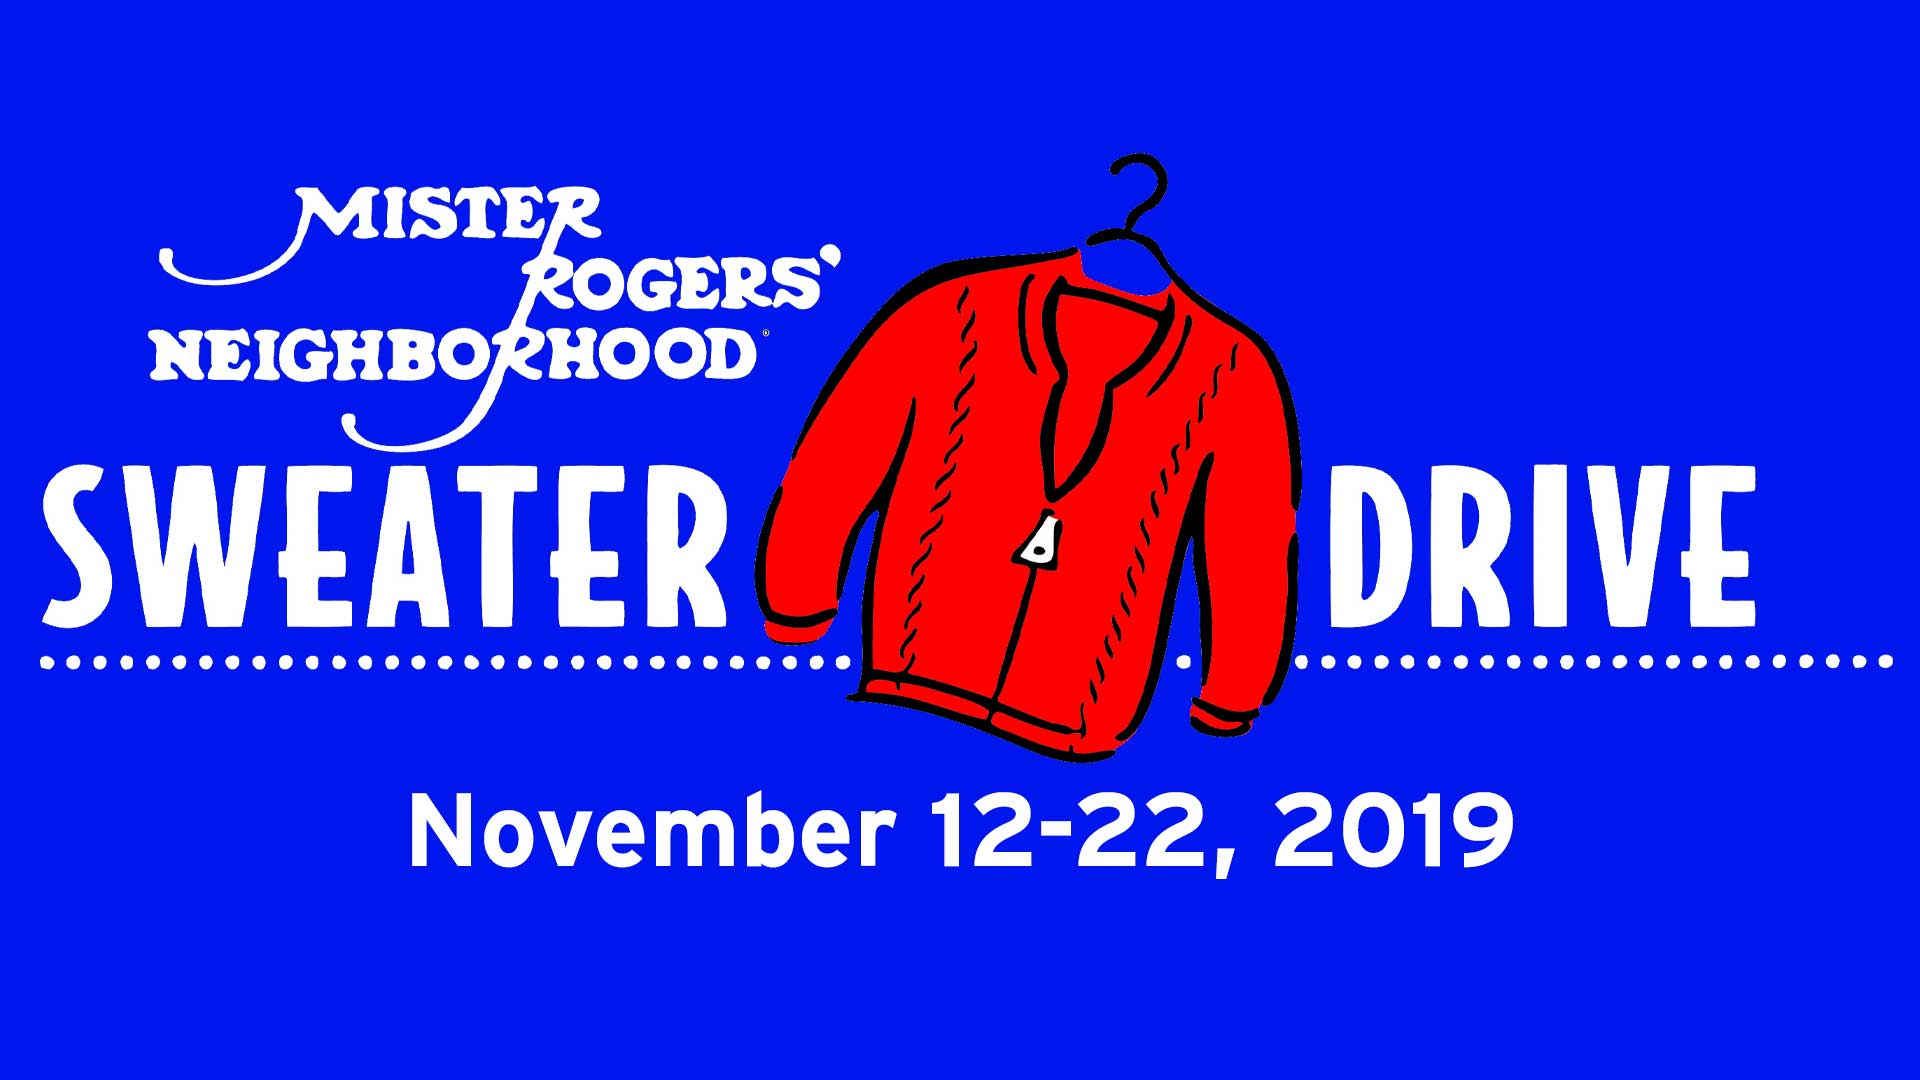 Donate new or gently used items during the Mr. Rogers' Neighborhood Sweater Drive.